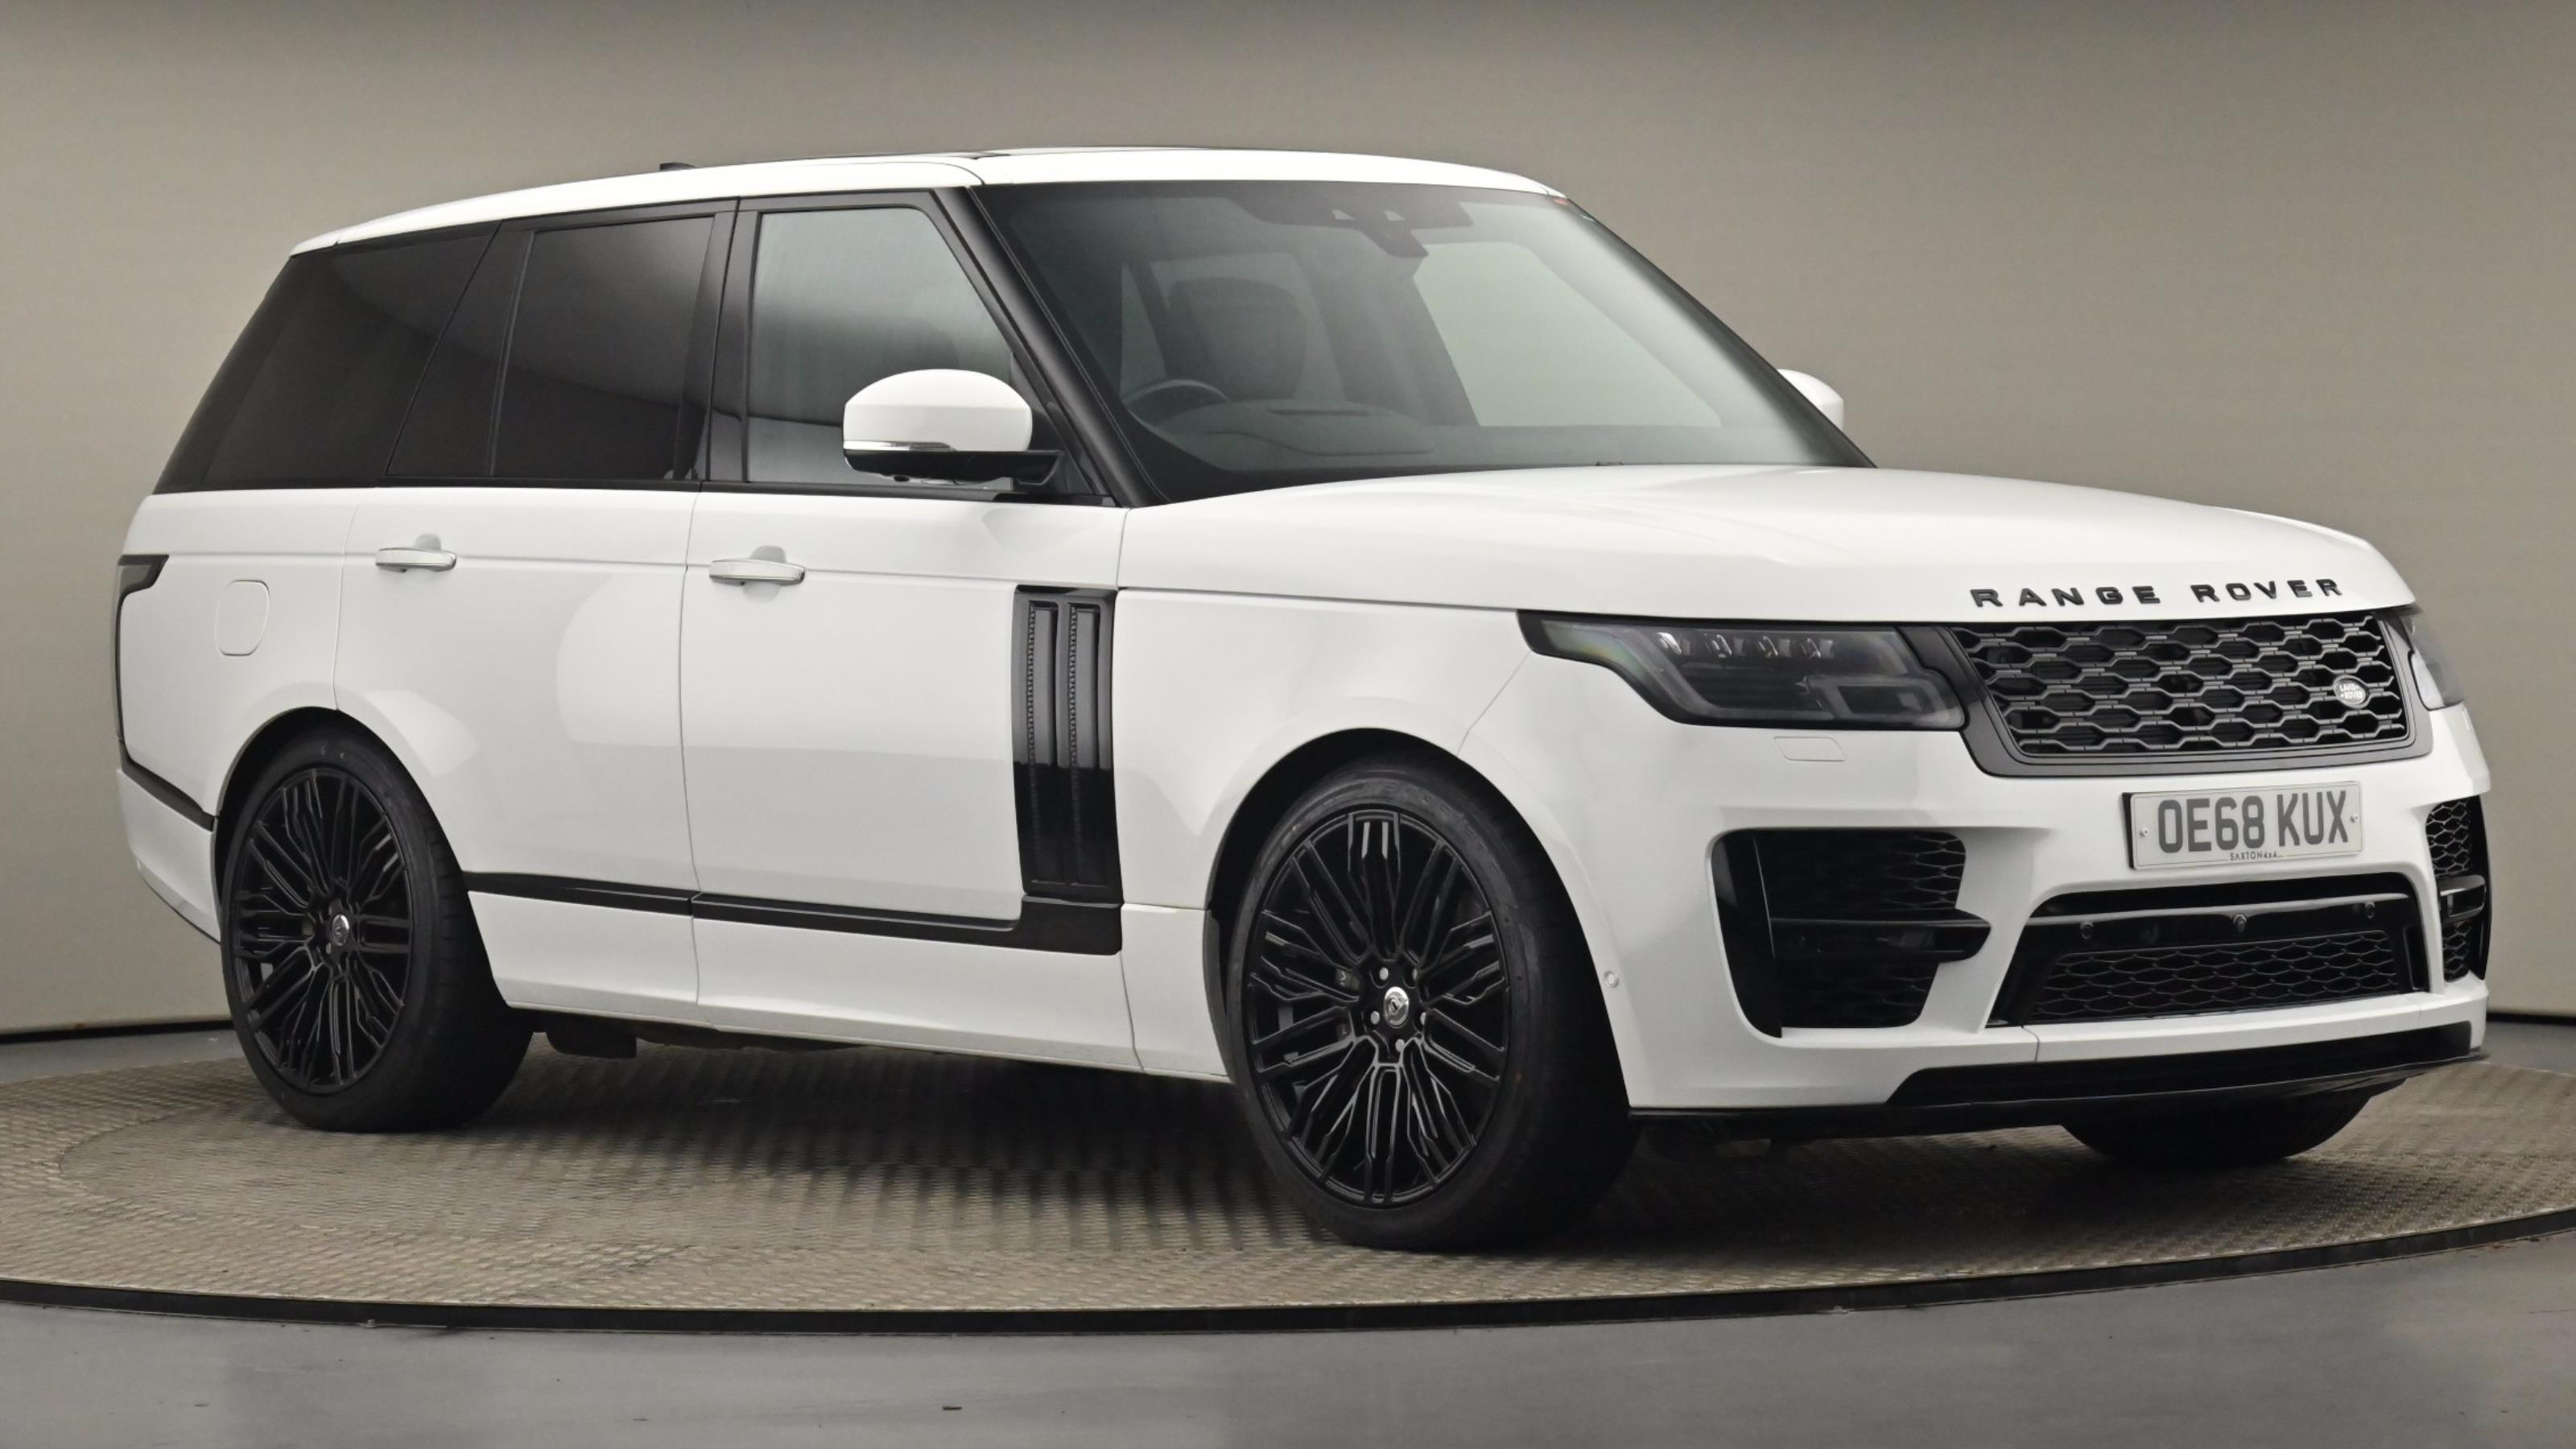 Used 2018 Land Rover RANGE ROVER 4.4 SDV8 Autobiography 4dr Auto WHITE at Saxton4x4